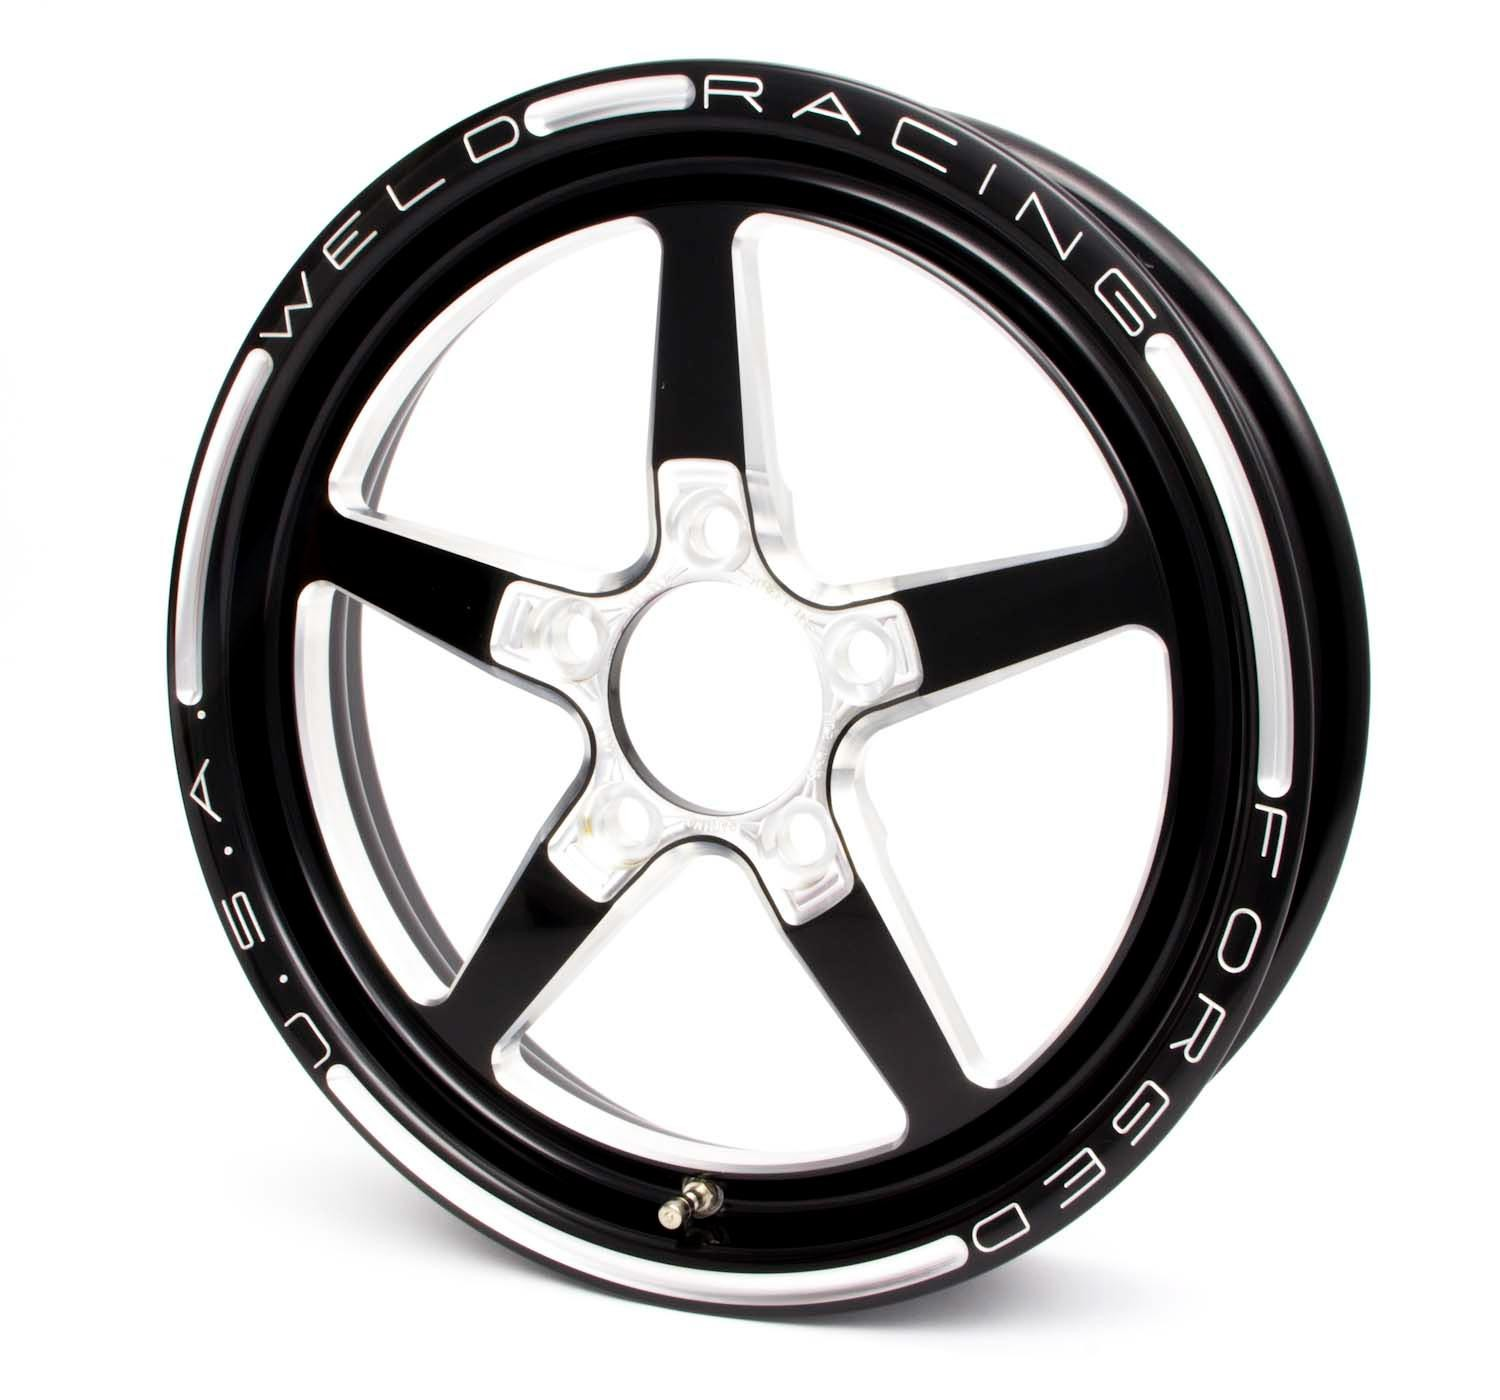 88B-15272 Weld Racing Aluma Star 15x3.5 Wheel 5x4.75 2.25 BS Black